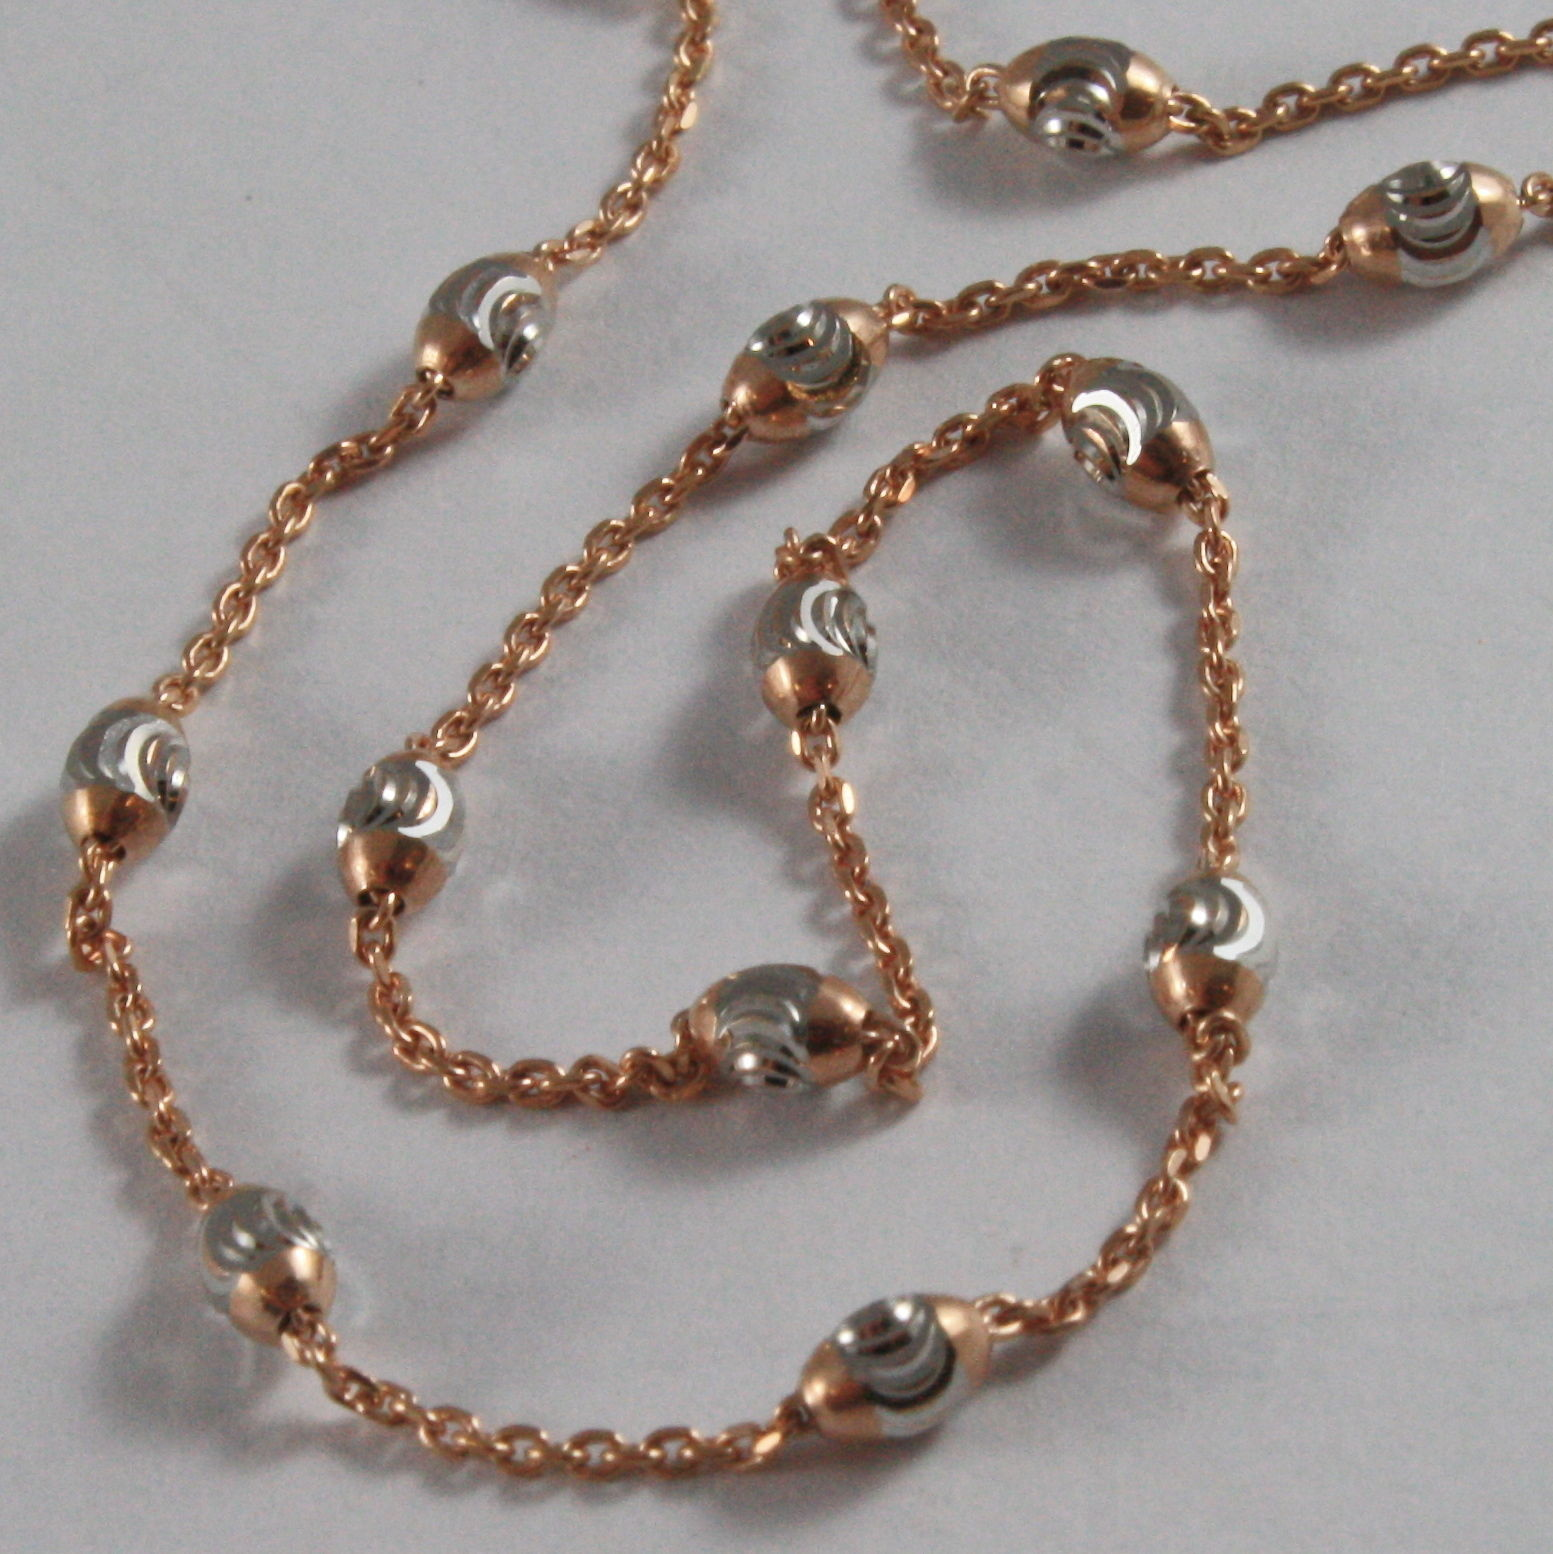 SOLID 18K ROSE & WHITE GOLD CHAIN NECKLACE MINI BALLS LINK 15.75 MADE IN ITALY